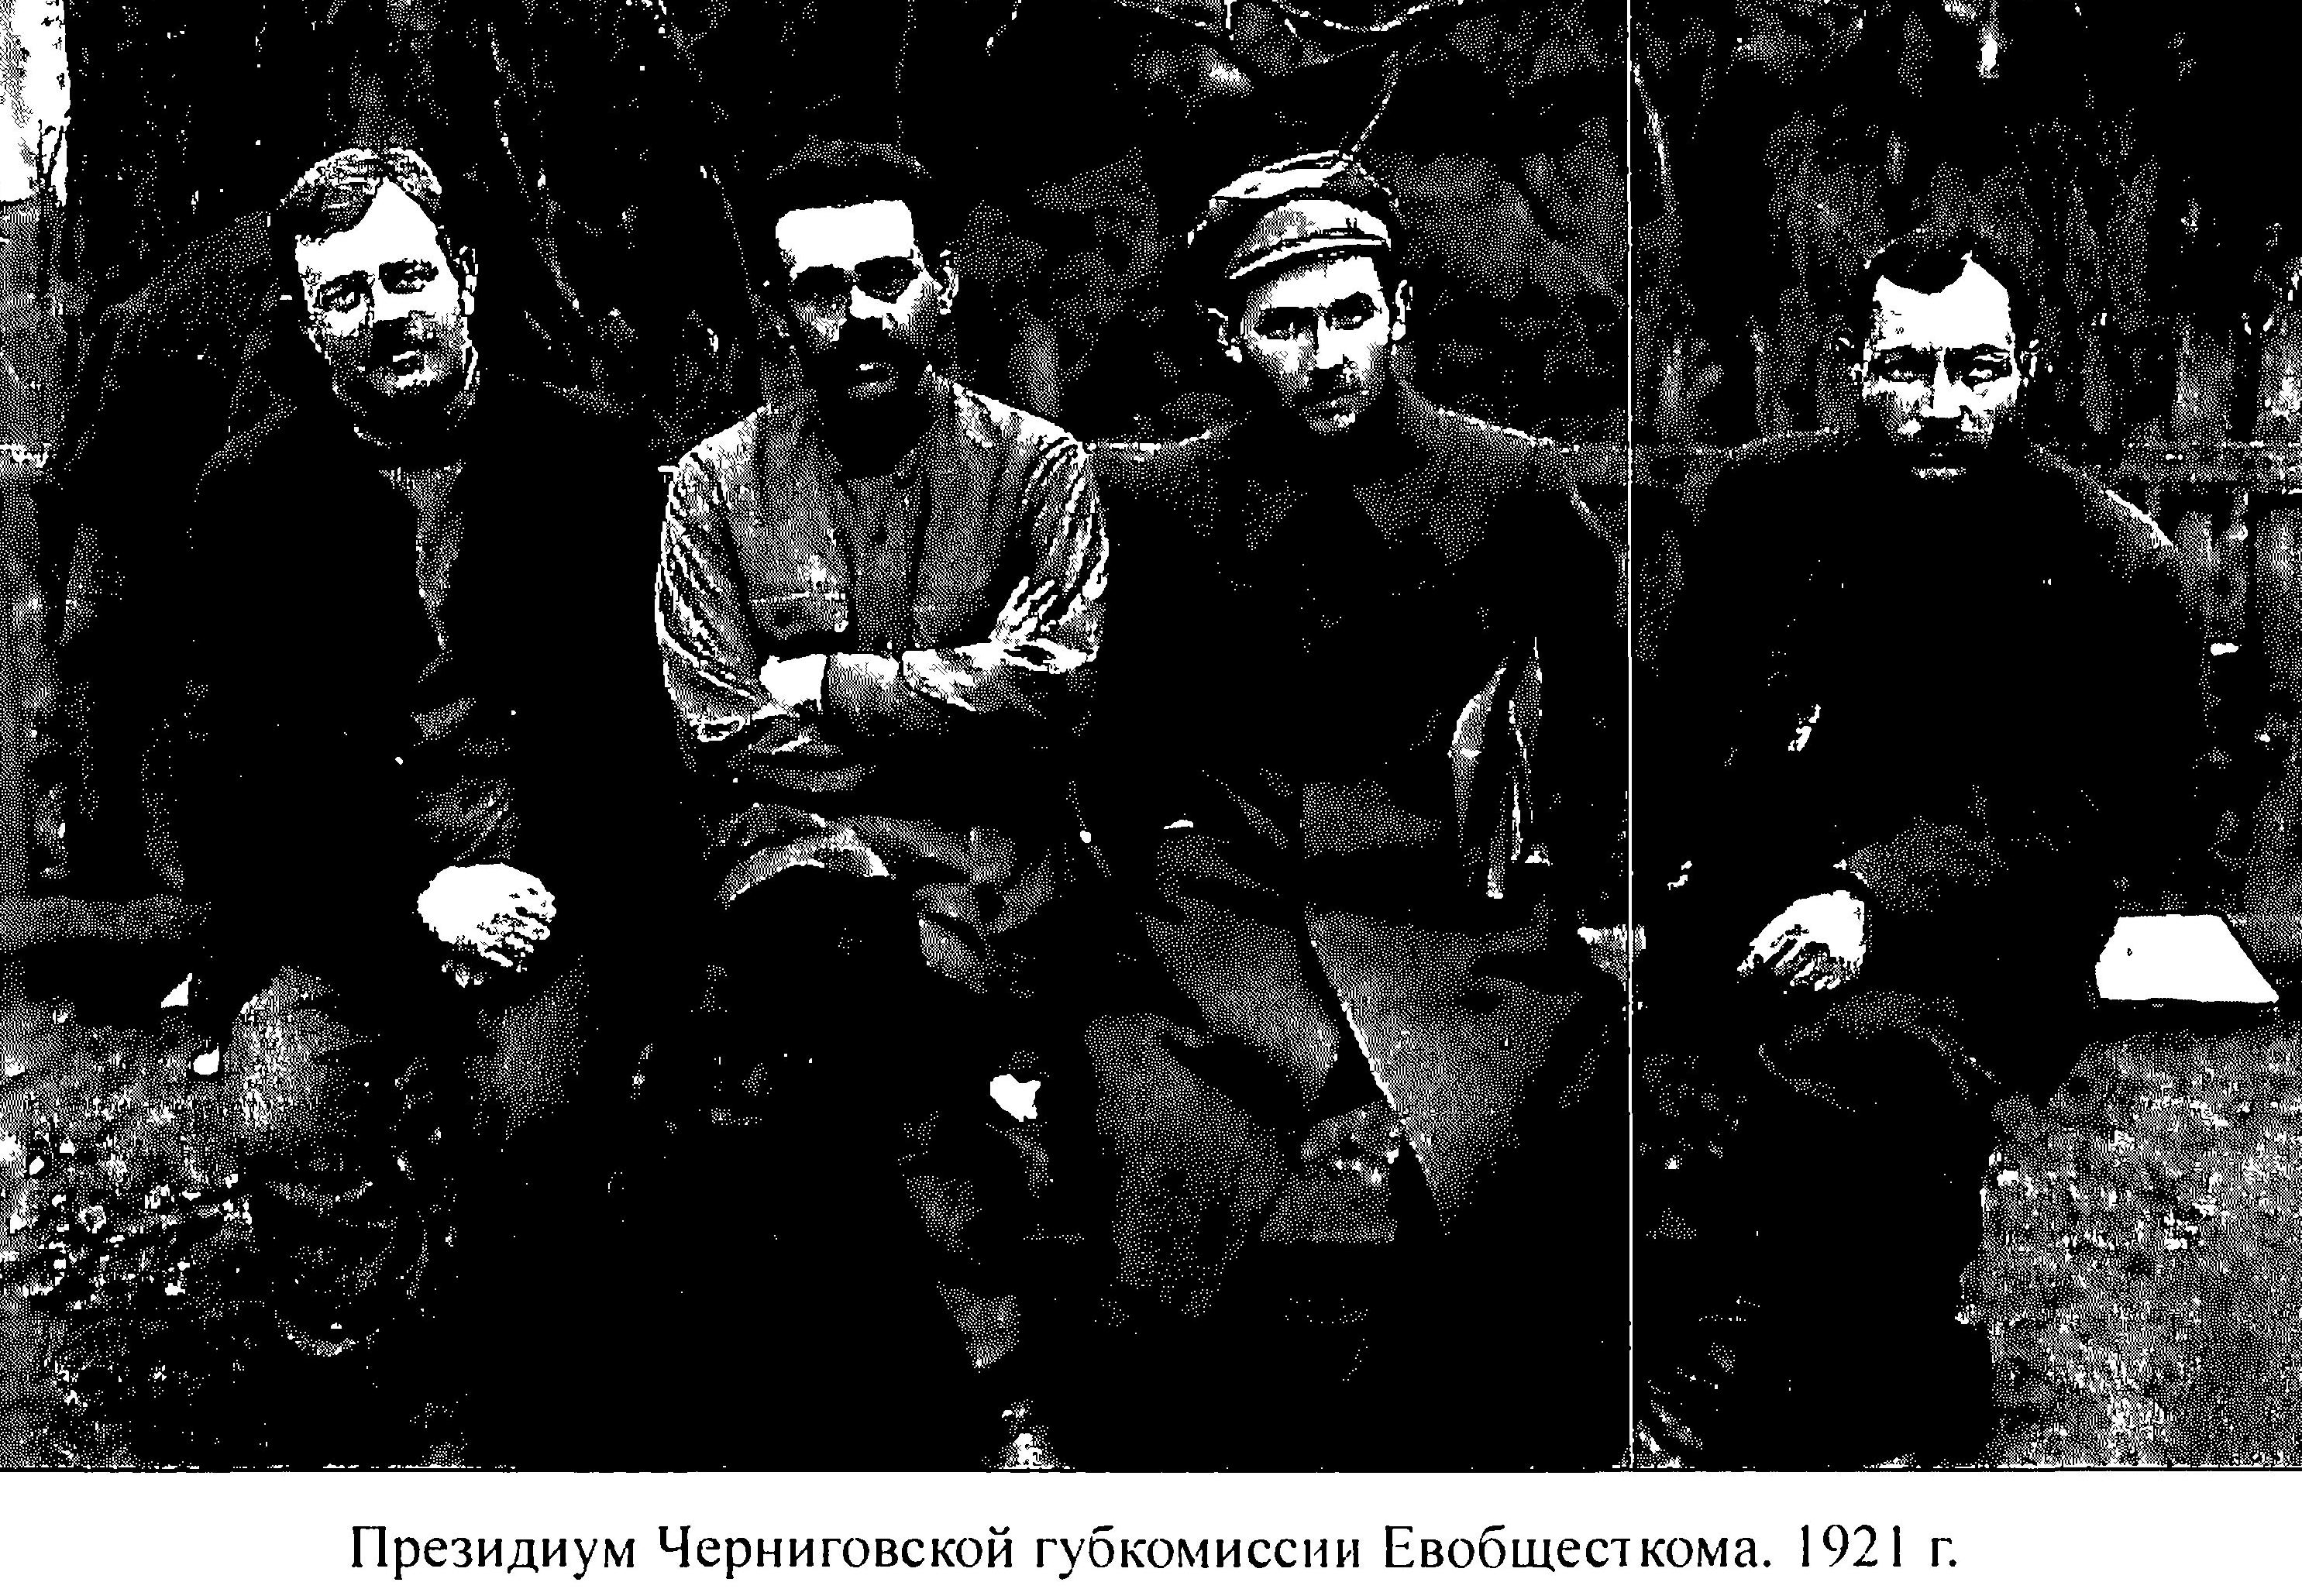 Members of Committee of help to pogrom victims in Chernigov gubernia, 1921